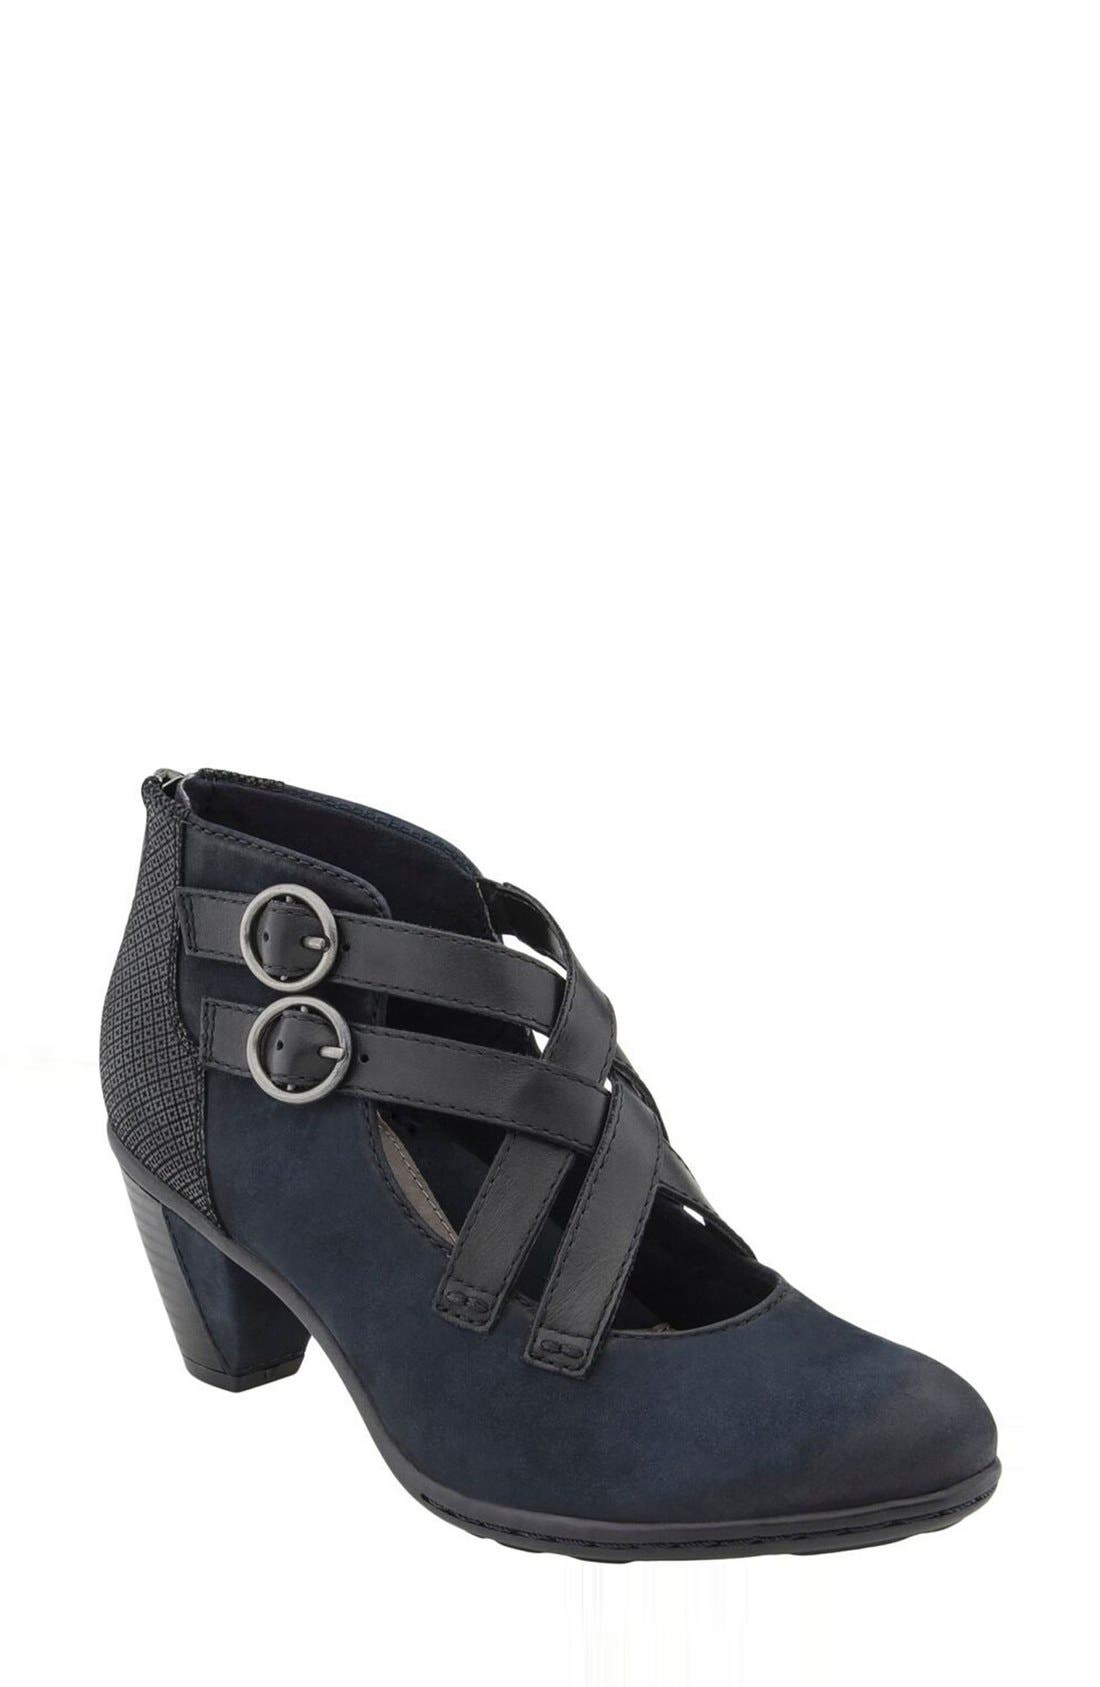 'Amber' Buckle Bootie,                             Main thumbnail 1, color,                             Navy Nubuck Leather